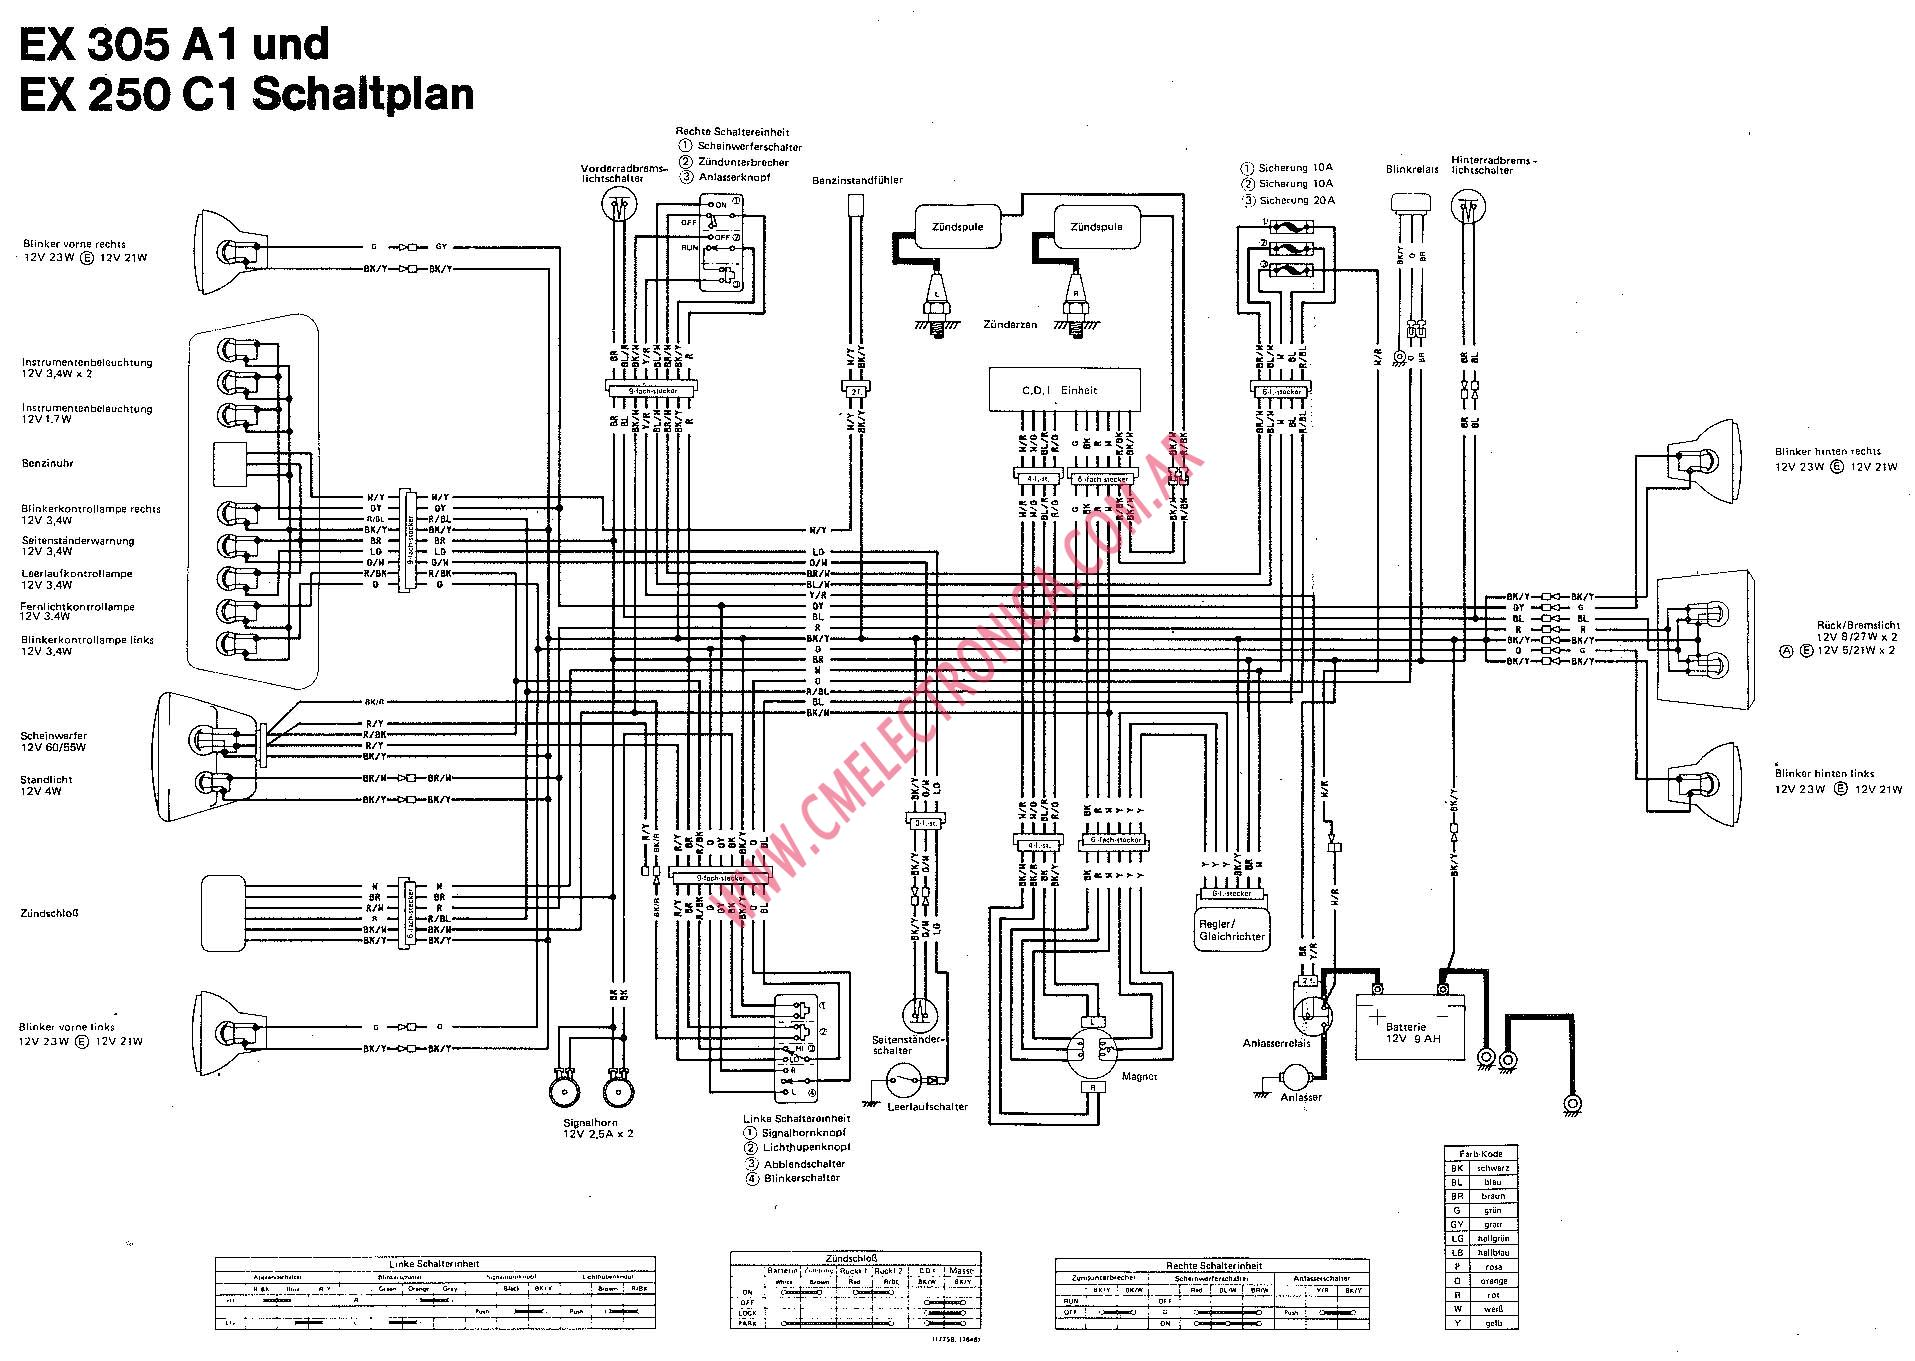 Kawasaki Gpz 1100 Wiring Diagram Simple Guide About 1983 Diagrams Kawaski Zzr Page 4 And Schematics Rh Wiringdiagram Theneverendingstory Co